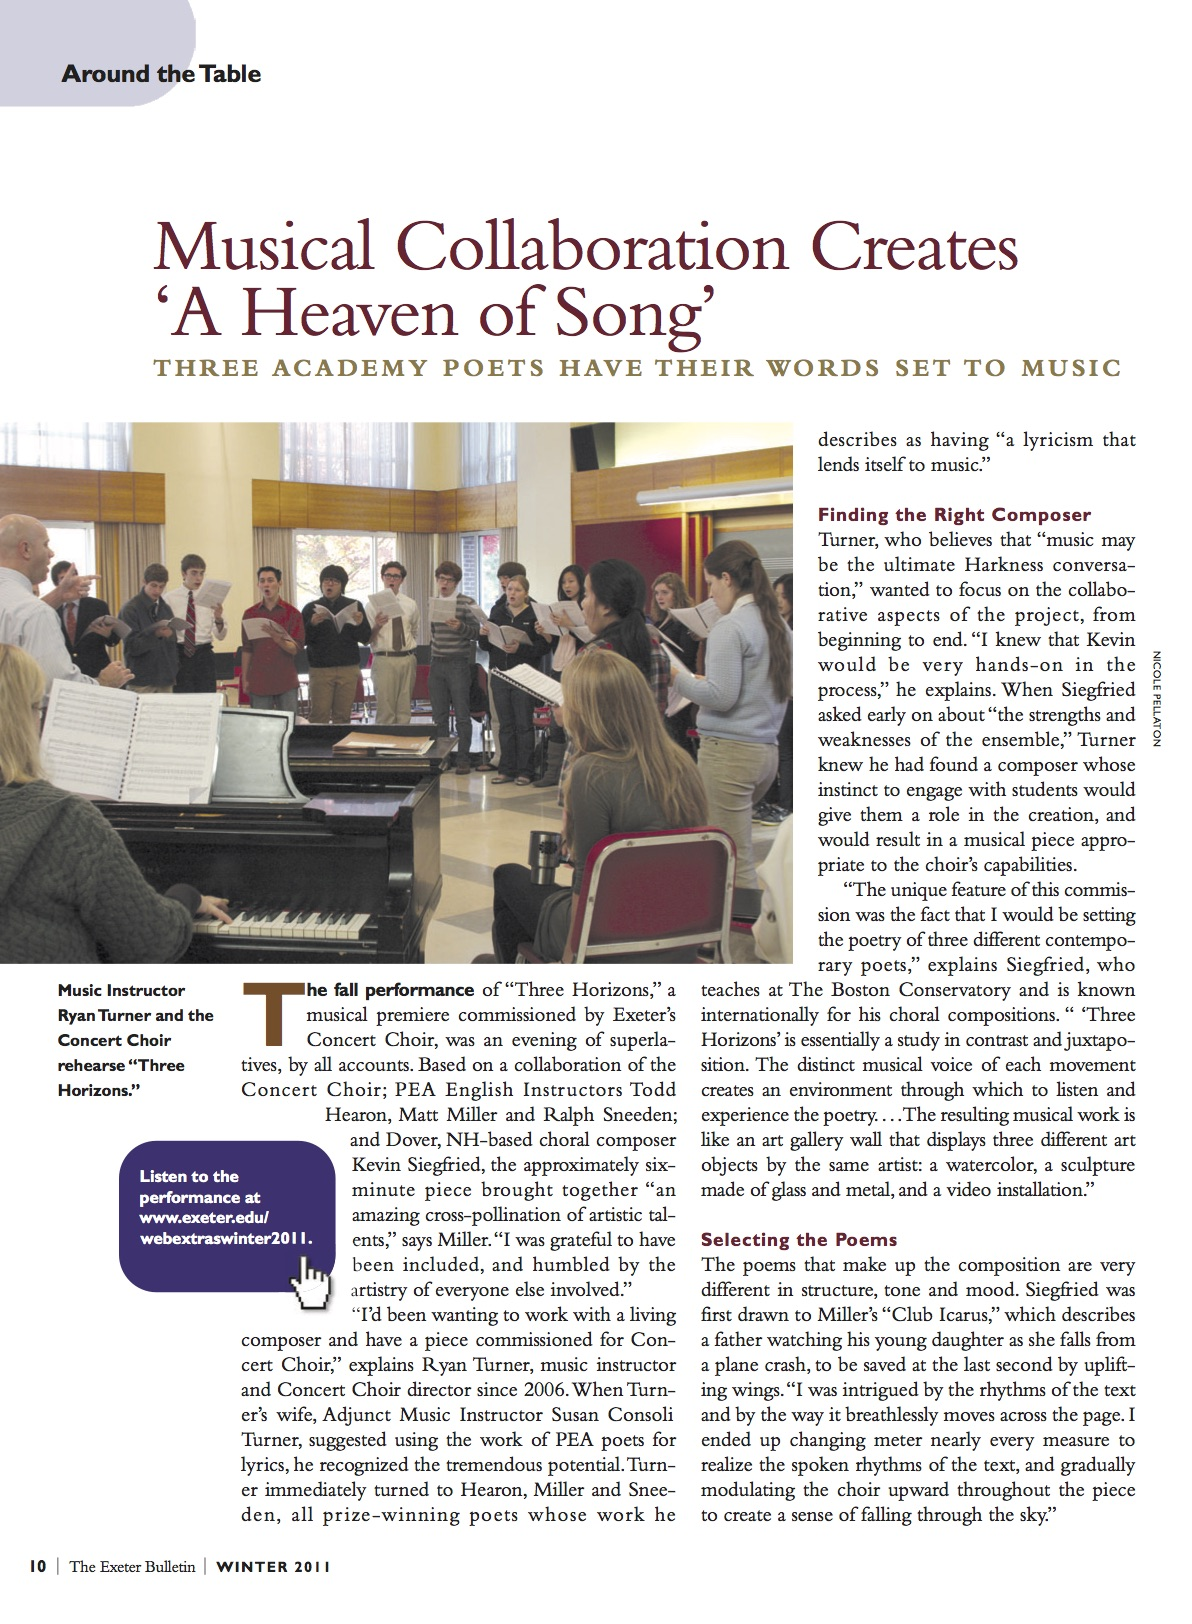 Musical Collaboration Creates A Heaven of Song image.jpg